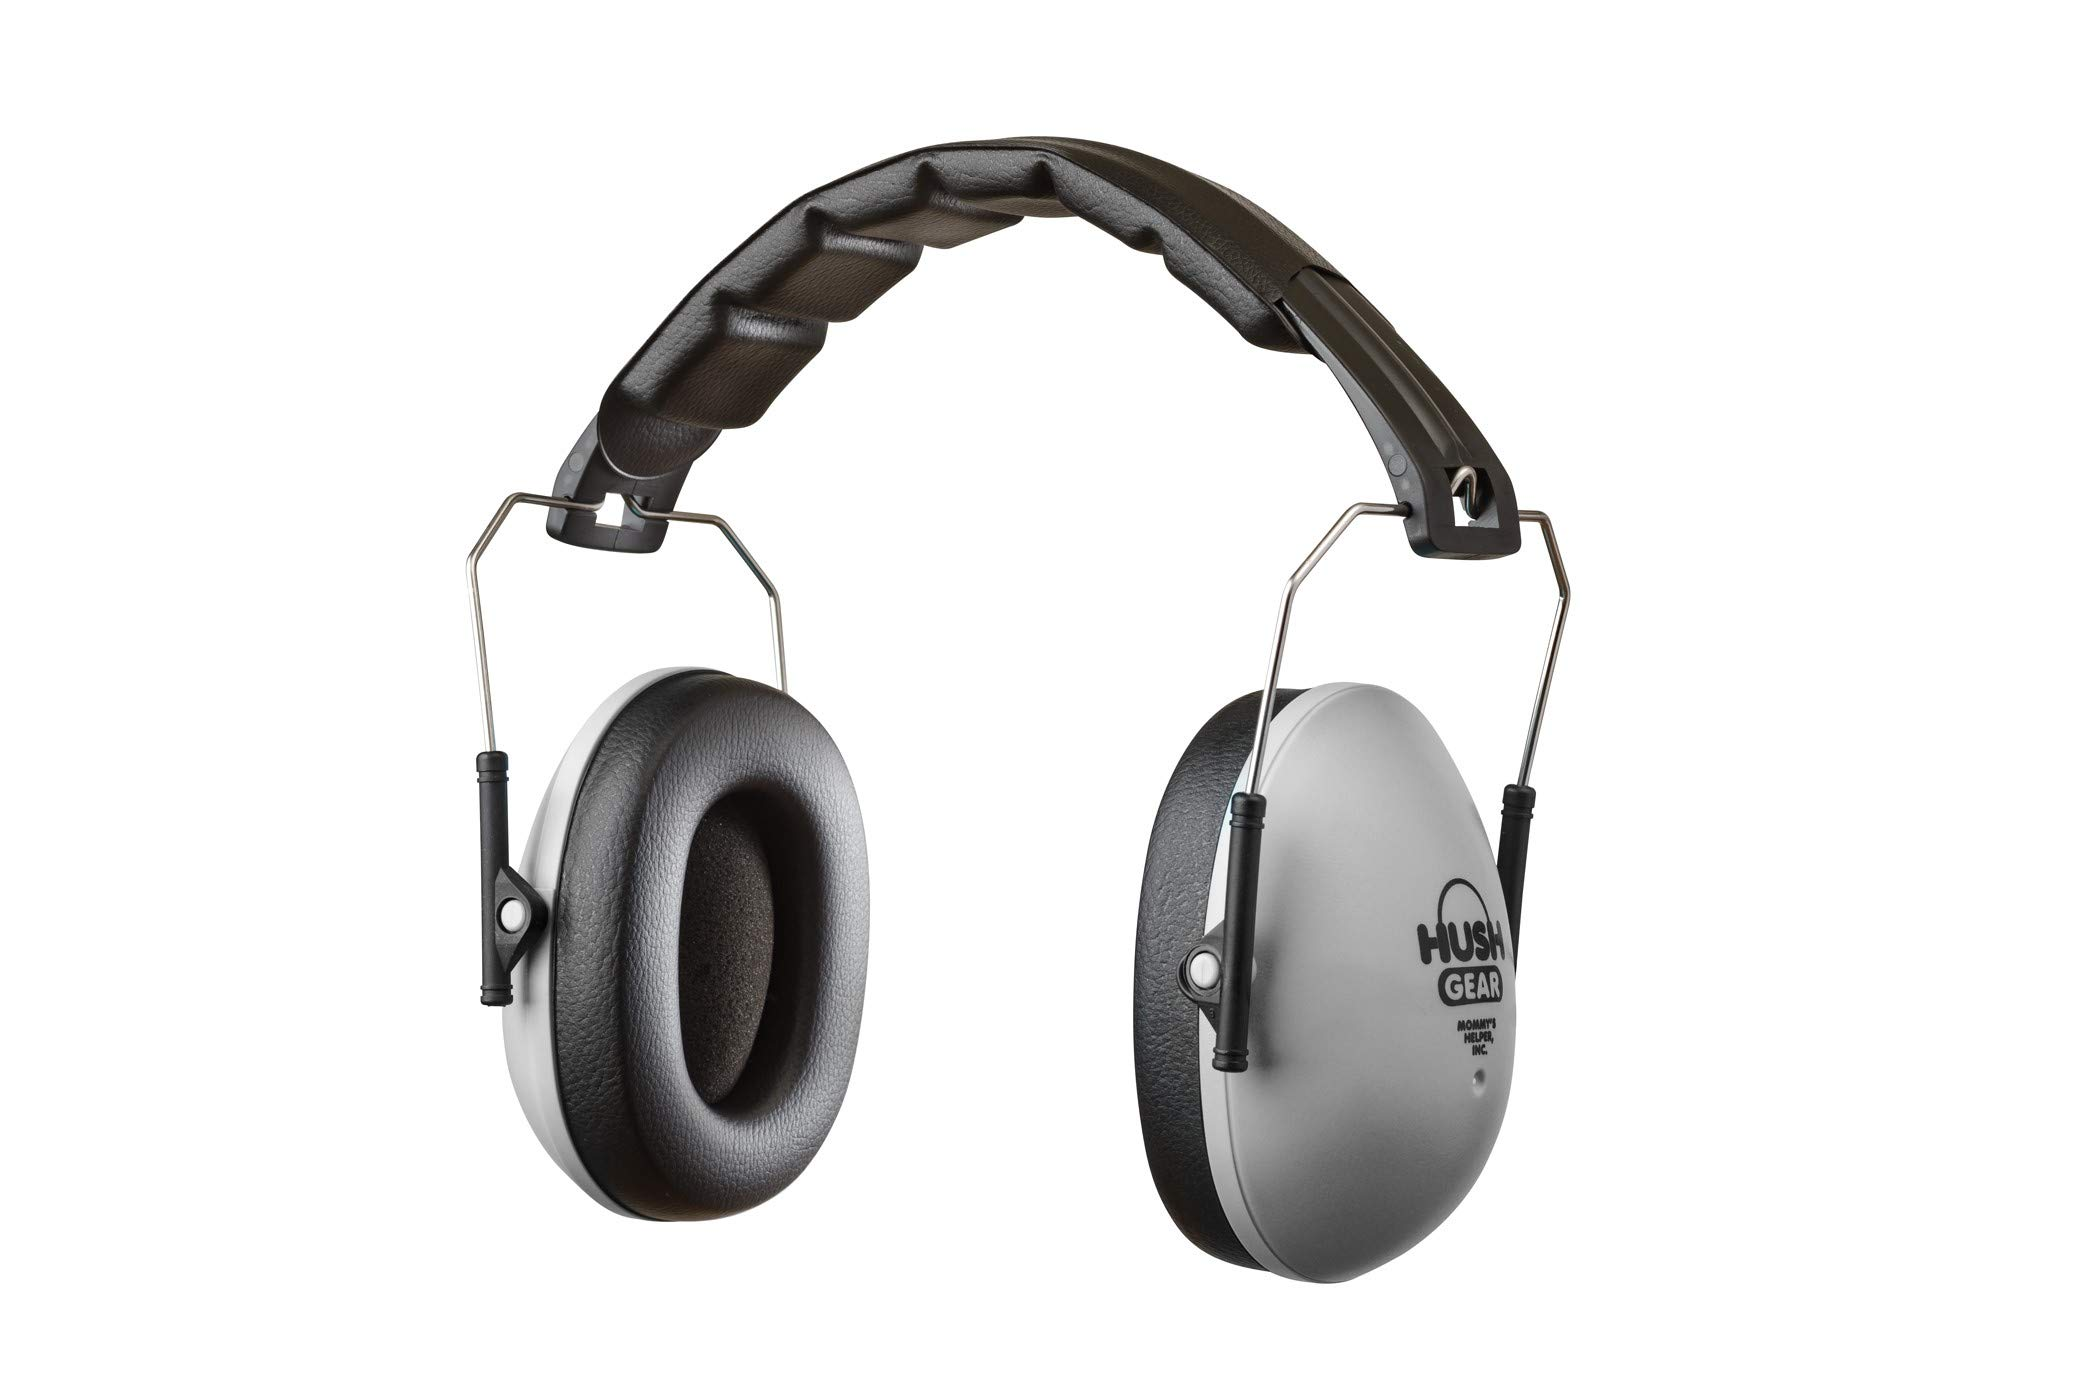 Mommys Helper Hush Gear Noise Cancelling Headphones for Kids Ear Protection Earmuffs - 28.6dB Noise Reduction for Toddler Ear Protection - Adjustable, Padded, Comfortable Fit Earmuffs for Kids, Grey